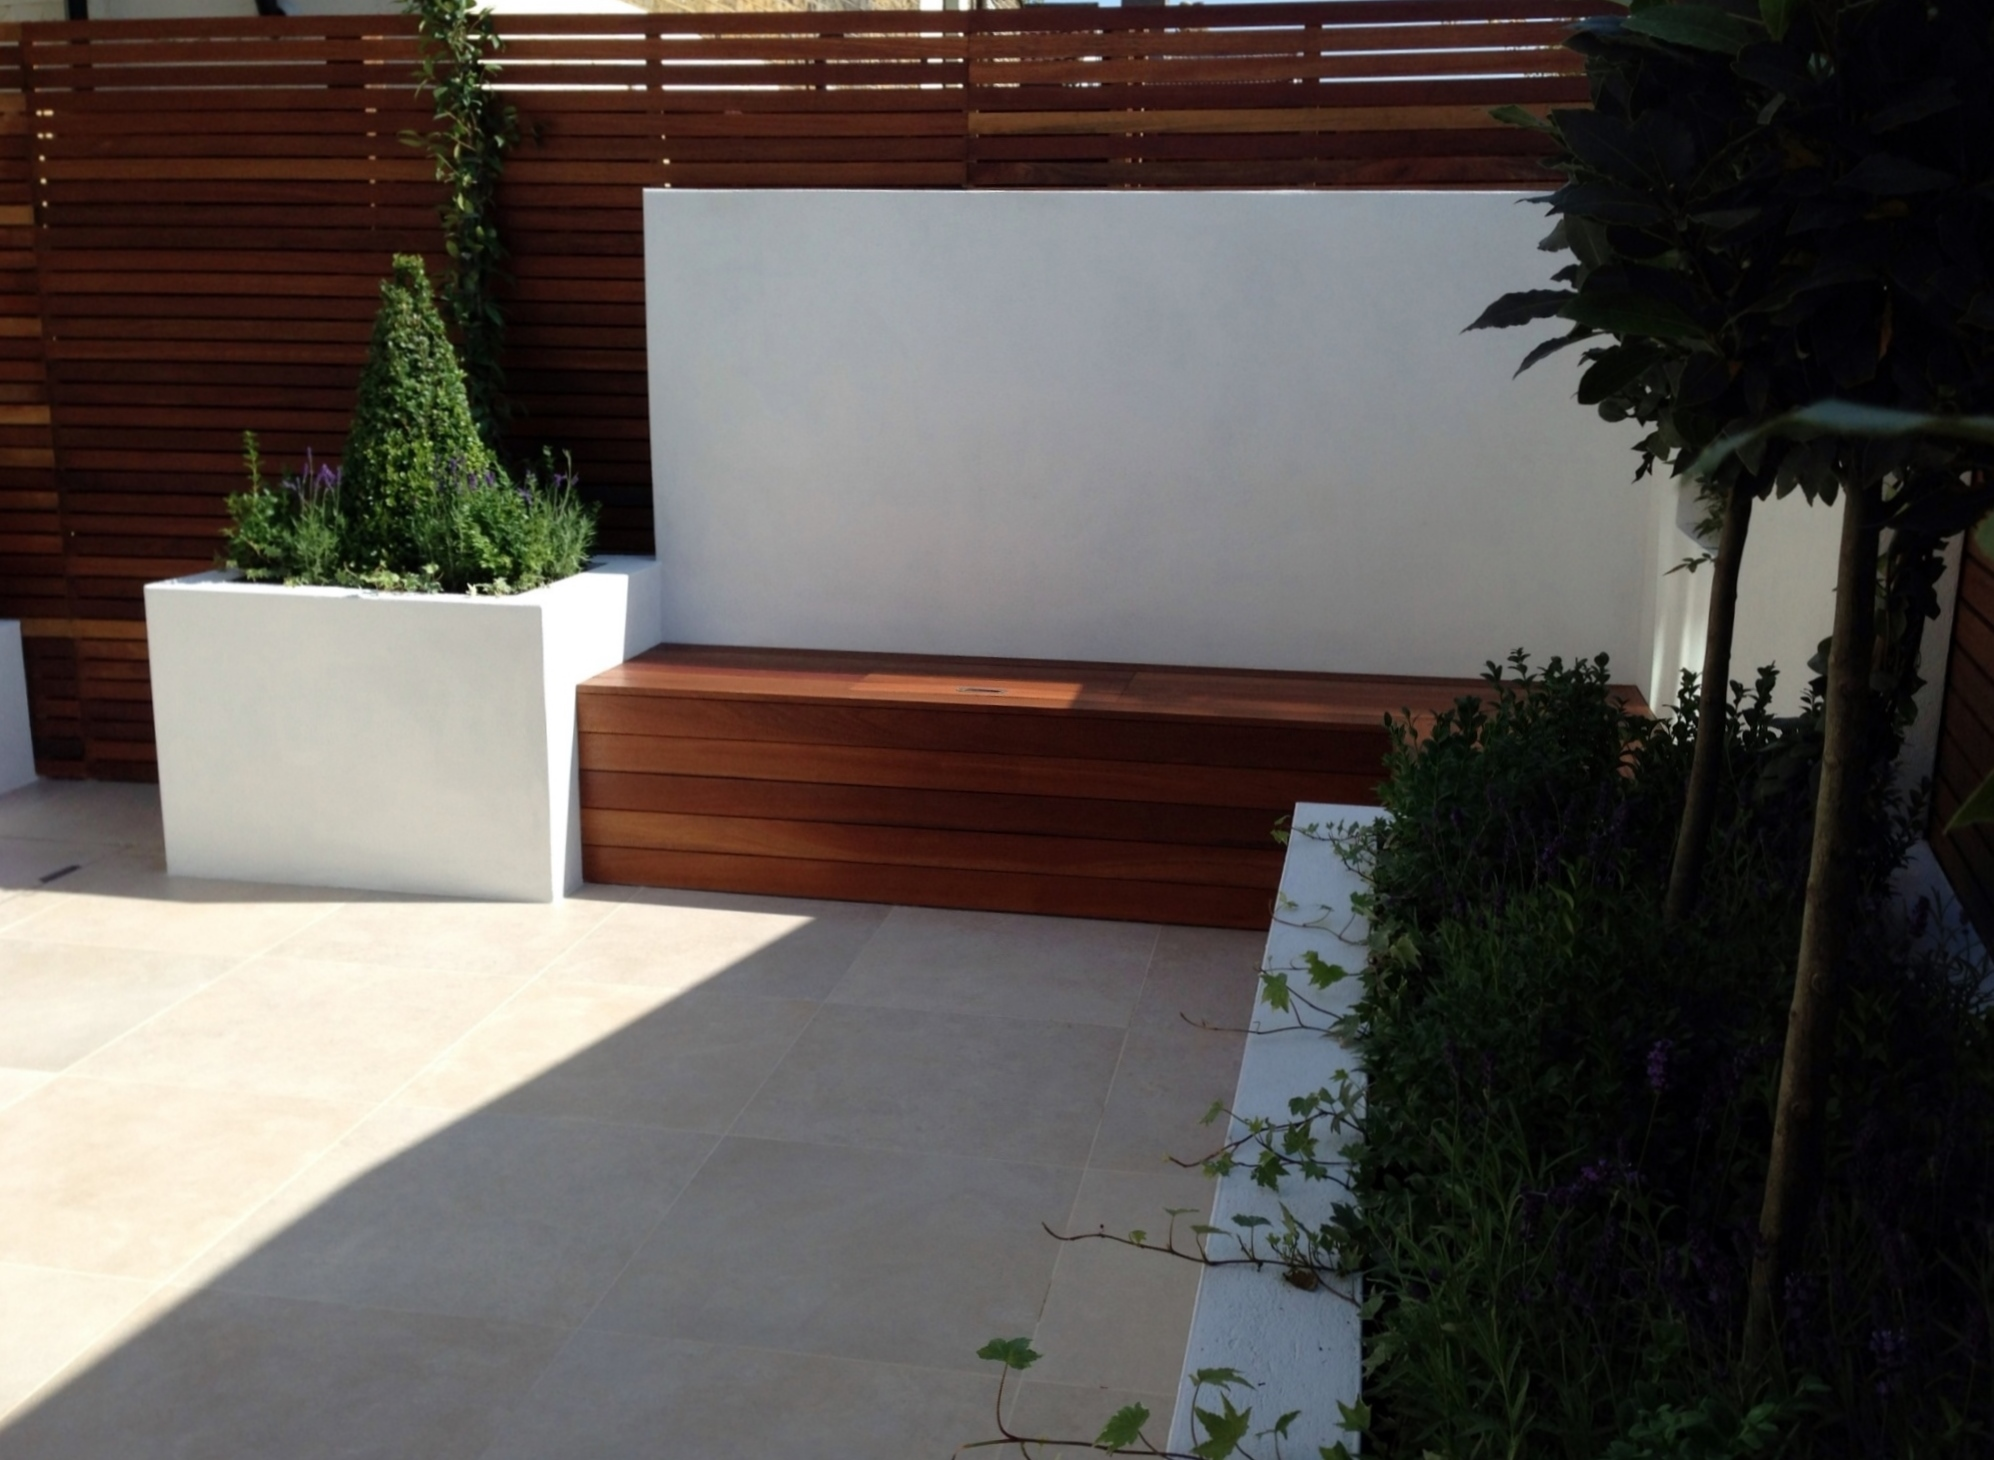 small garden design london dulwich ideas low maintenance grey tiles render plaster walls hardwood bench